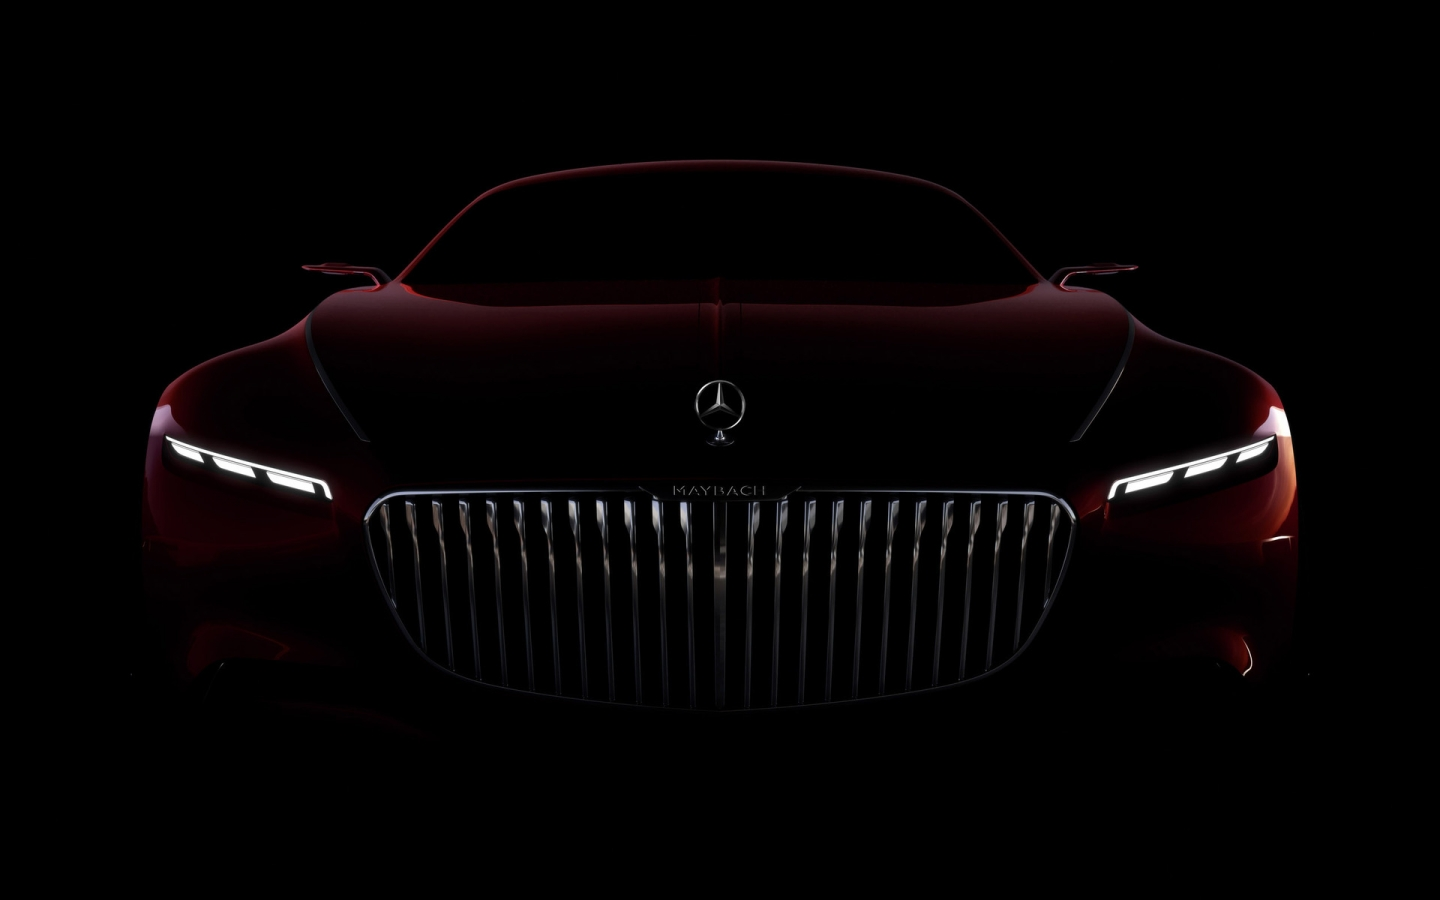 Amazing Vision Mercedes Maybach 6 2016 for 1440 x 900 widescreen resolution